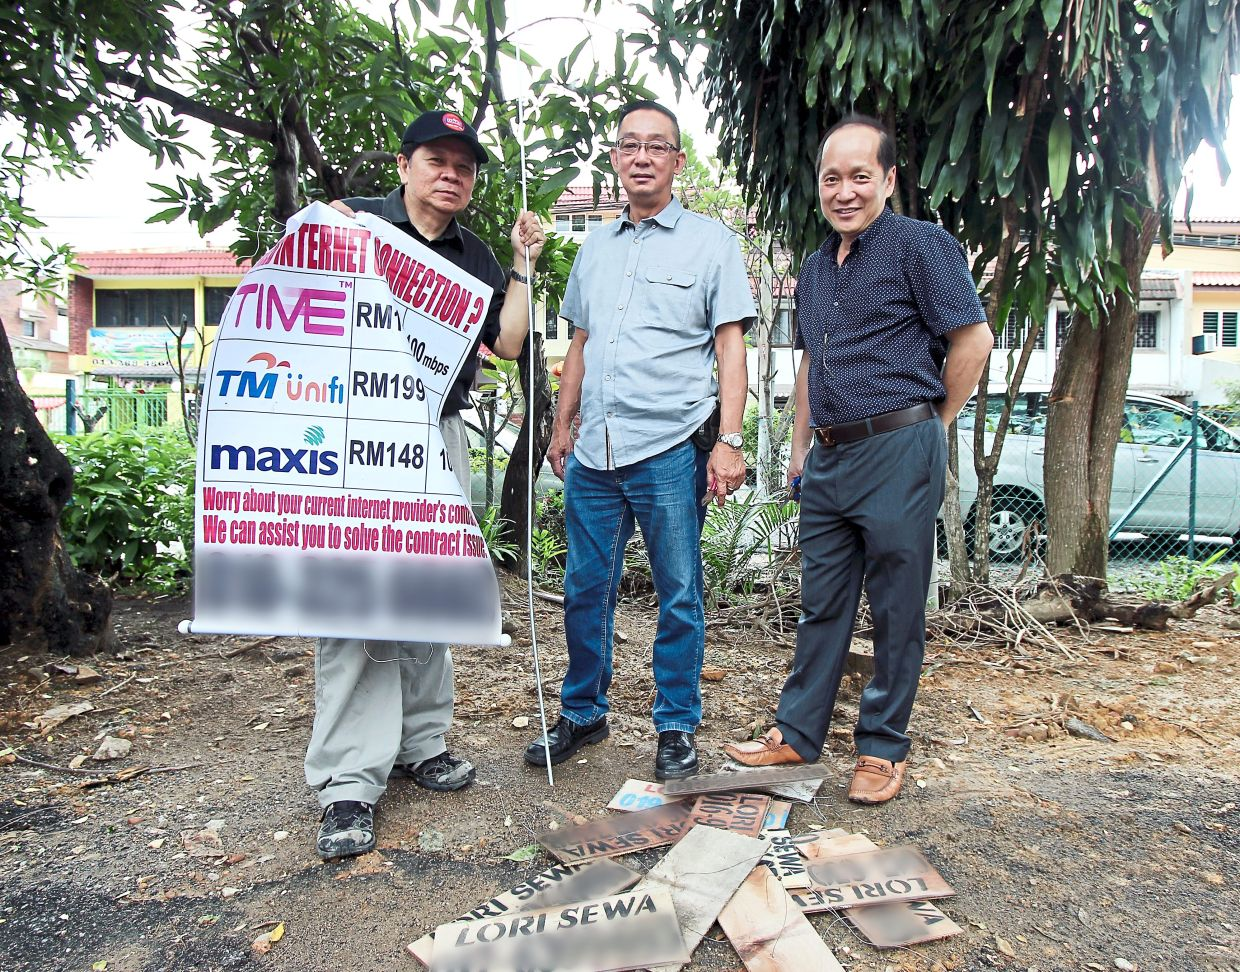 Taman Desa Residents Association (TDRA) committee member Francis Tan, Wong and TDRA adviser William Chan showing some of the illegal advertisements they removed around Taman Desa. This filepic was taken before the Covid-19 pandemic.